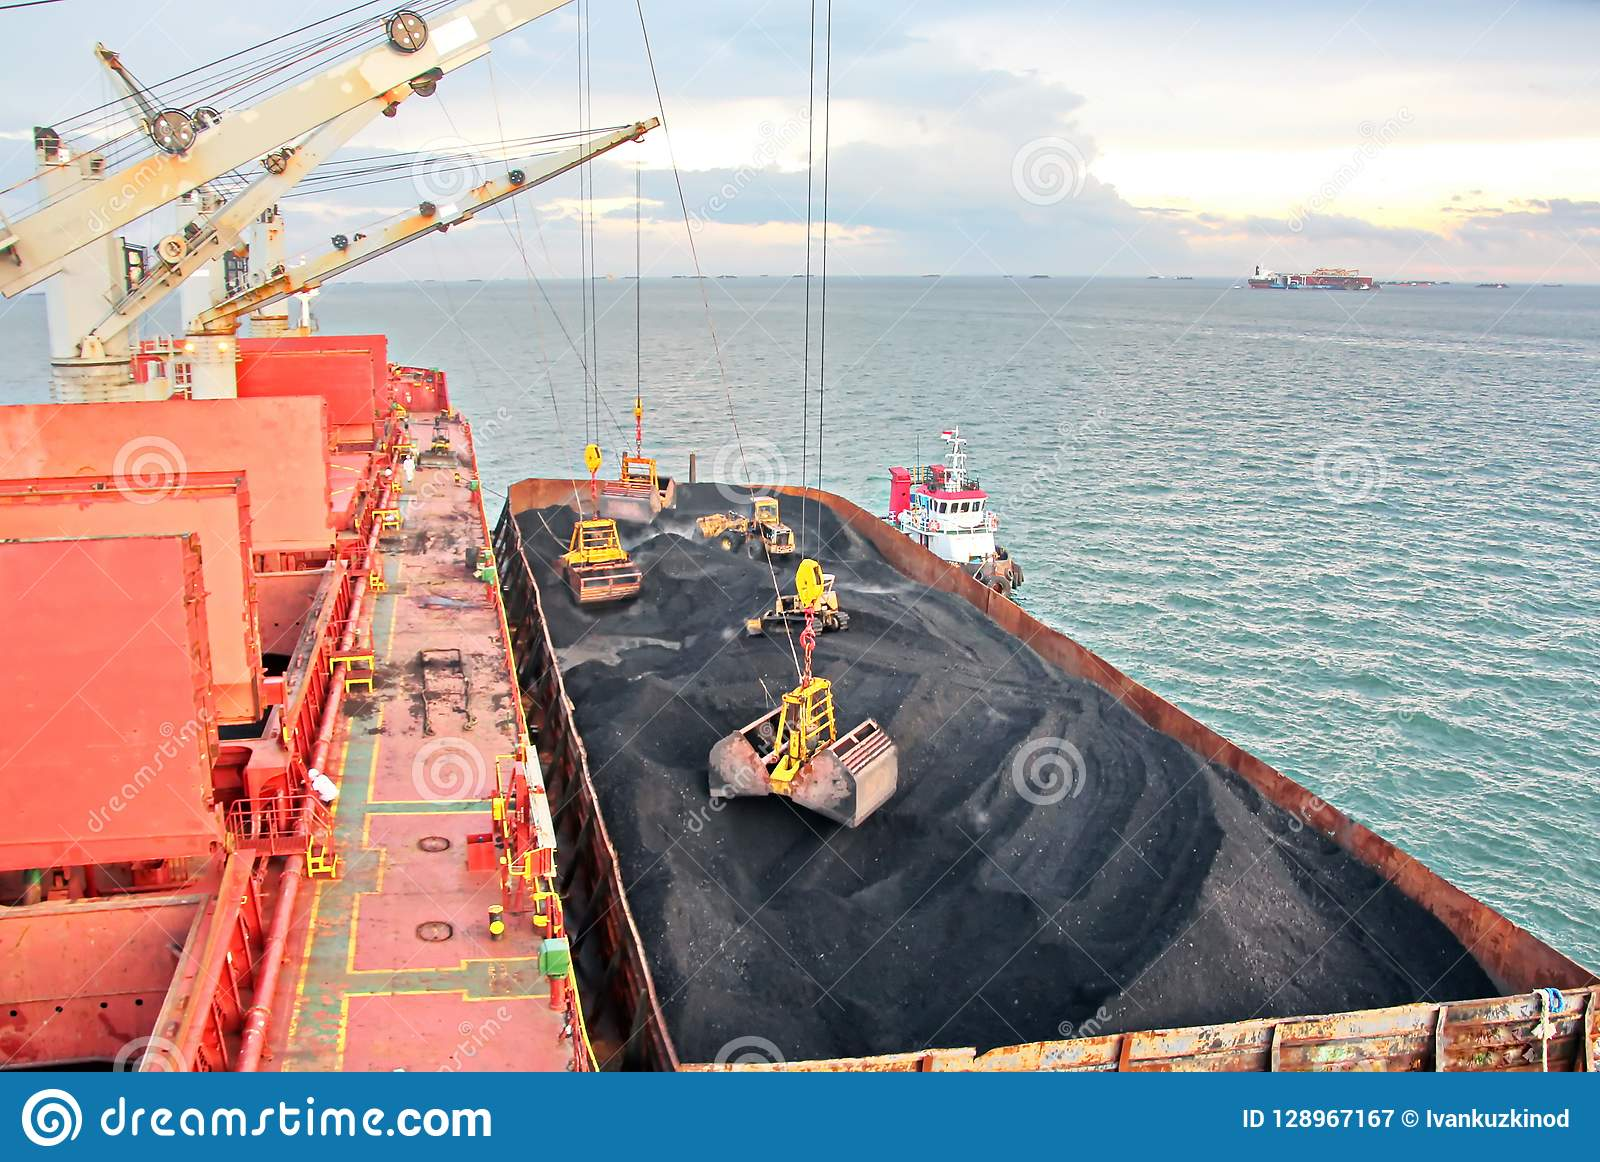 Loading coal from cargo barges onto a bulk carrier using ship cranes and grabs at the port of Samarinda, Indonesia.